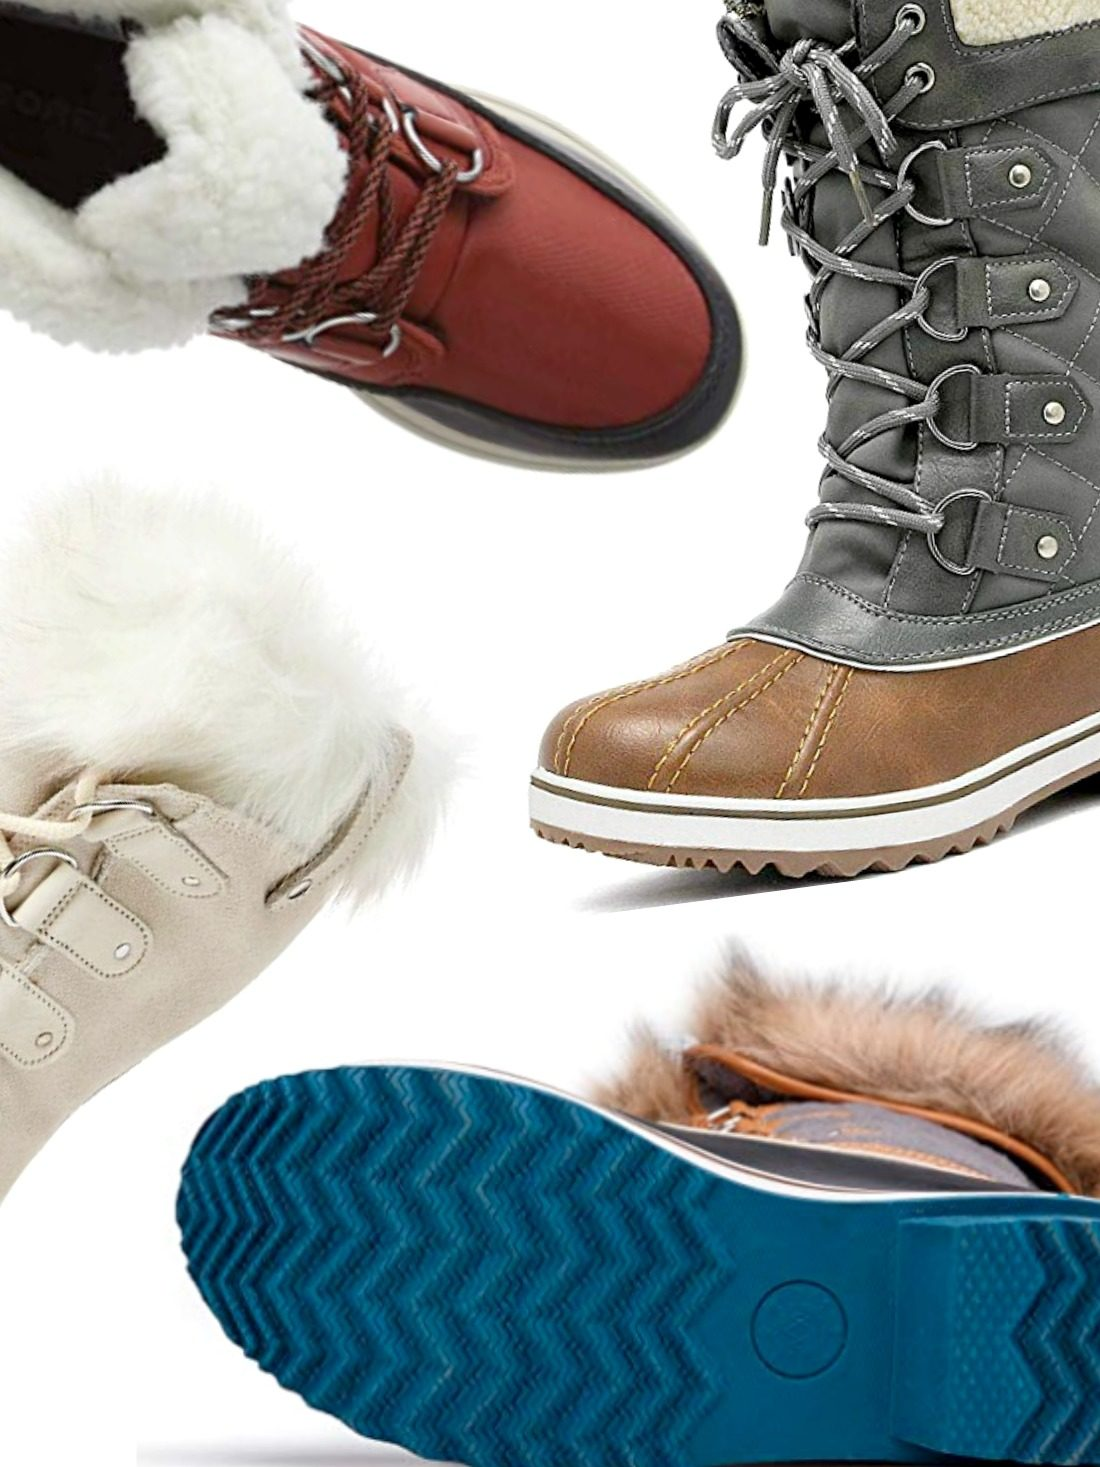 Afraid of cold feet? We get you, Girl! And we have just the armor to save you from turning into a jittery mess, give our best womens snow boots with fur list a look!